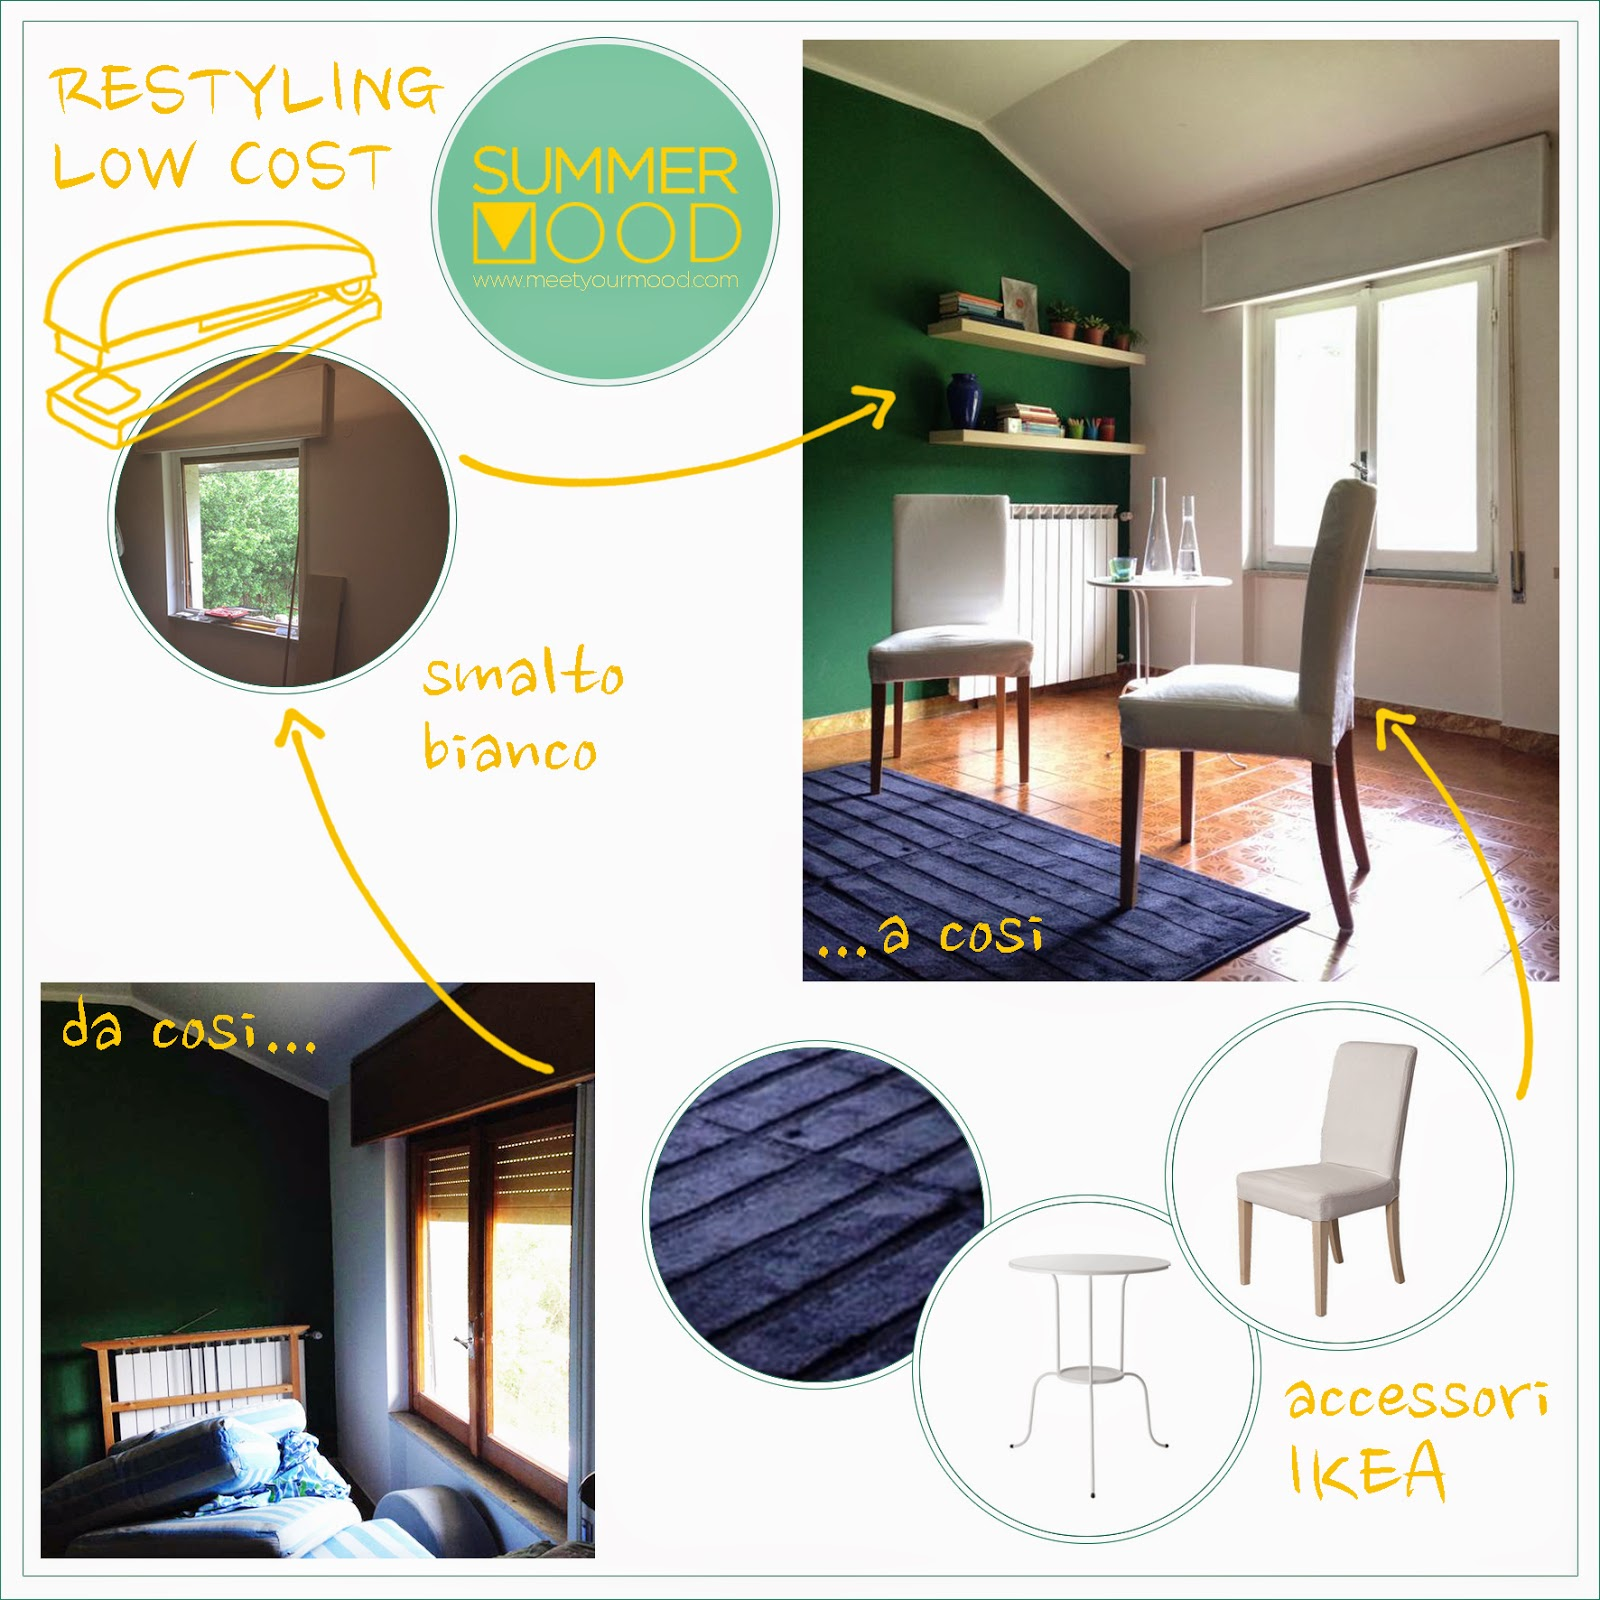 Restyling low cost un mood meetyourmood - Cornici a giorno ikea ...